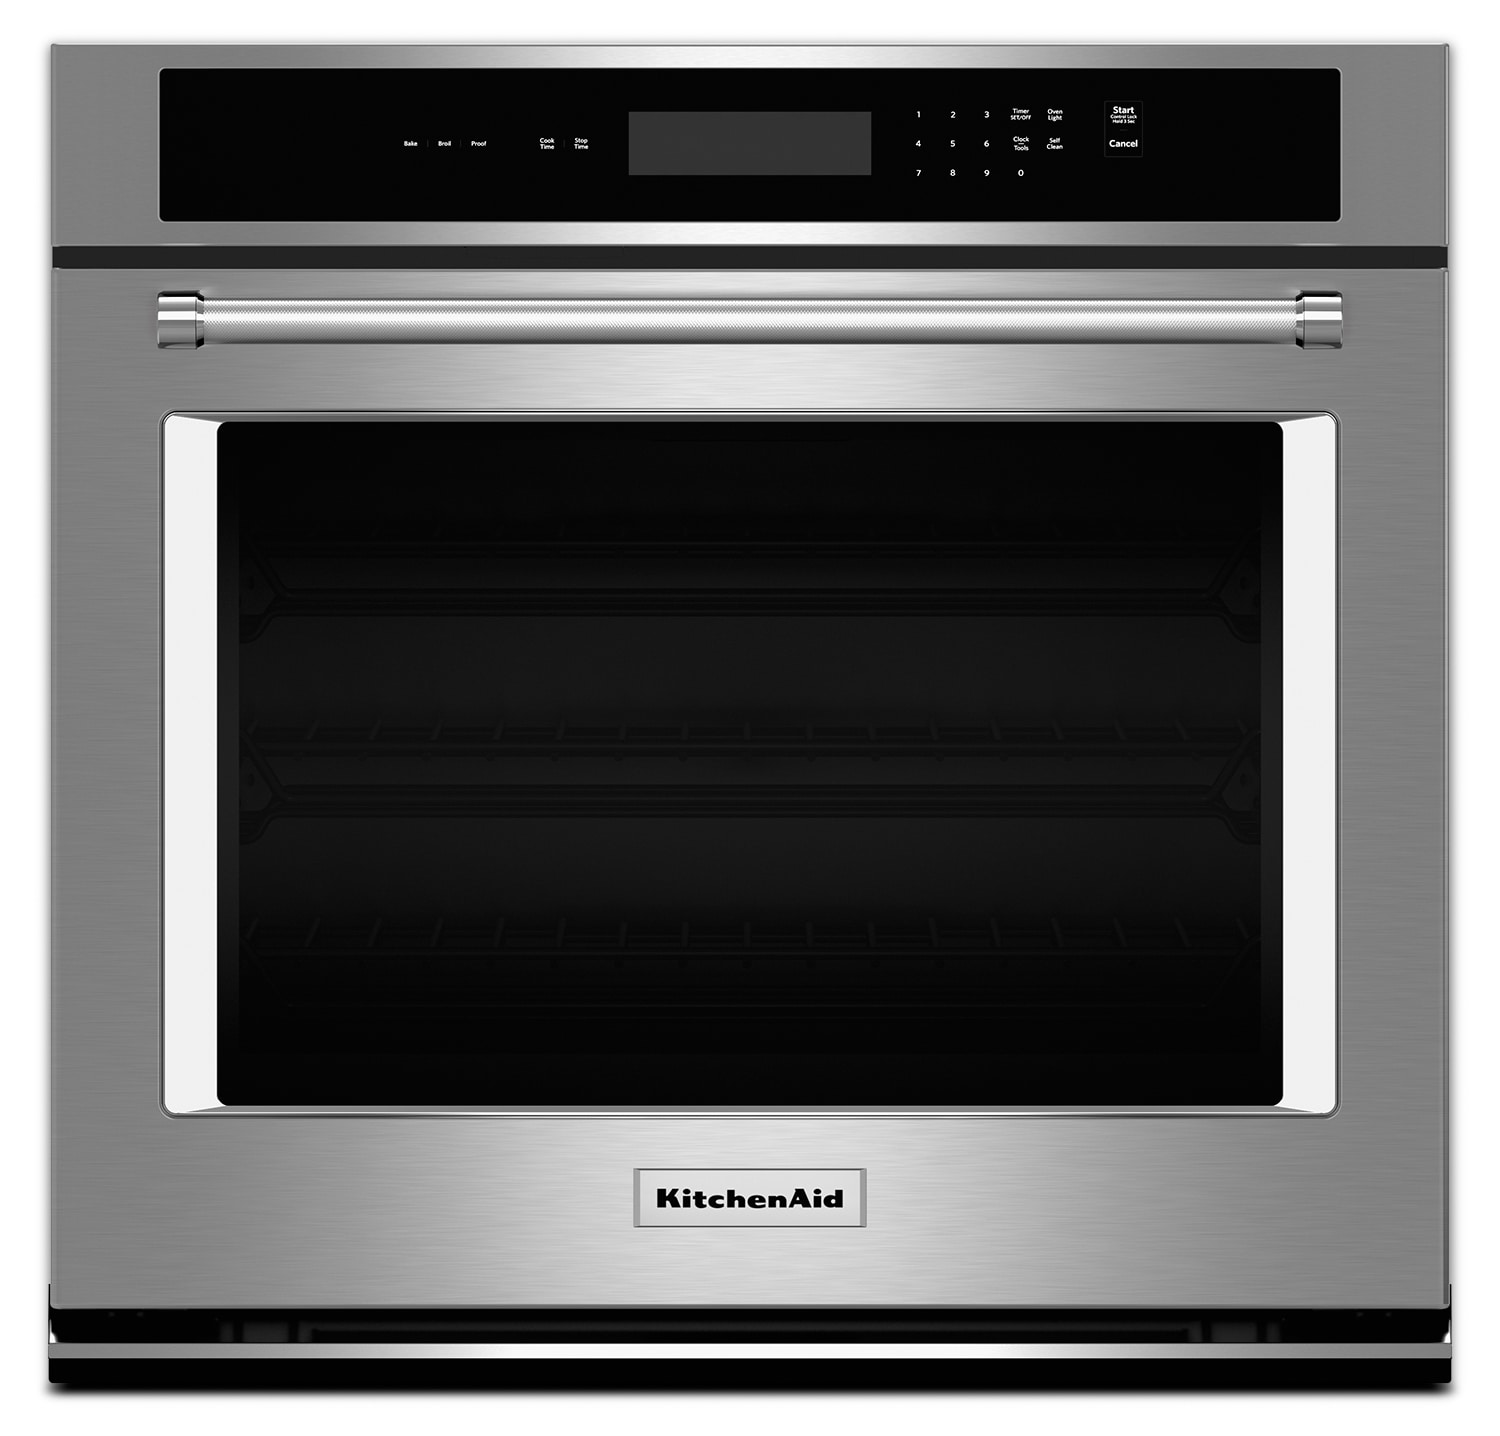 "KitchenAid 27"" Single Wall Oven with Even-Heat™ Thermal Bake and Broil – Stainless Steel"